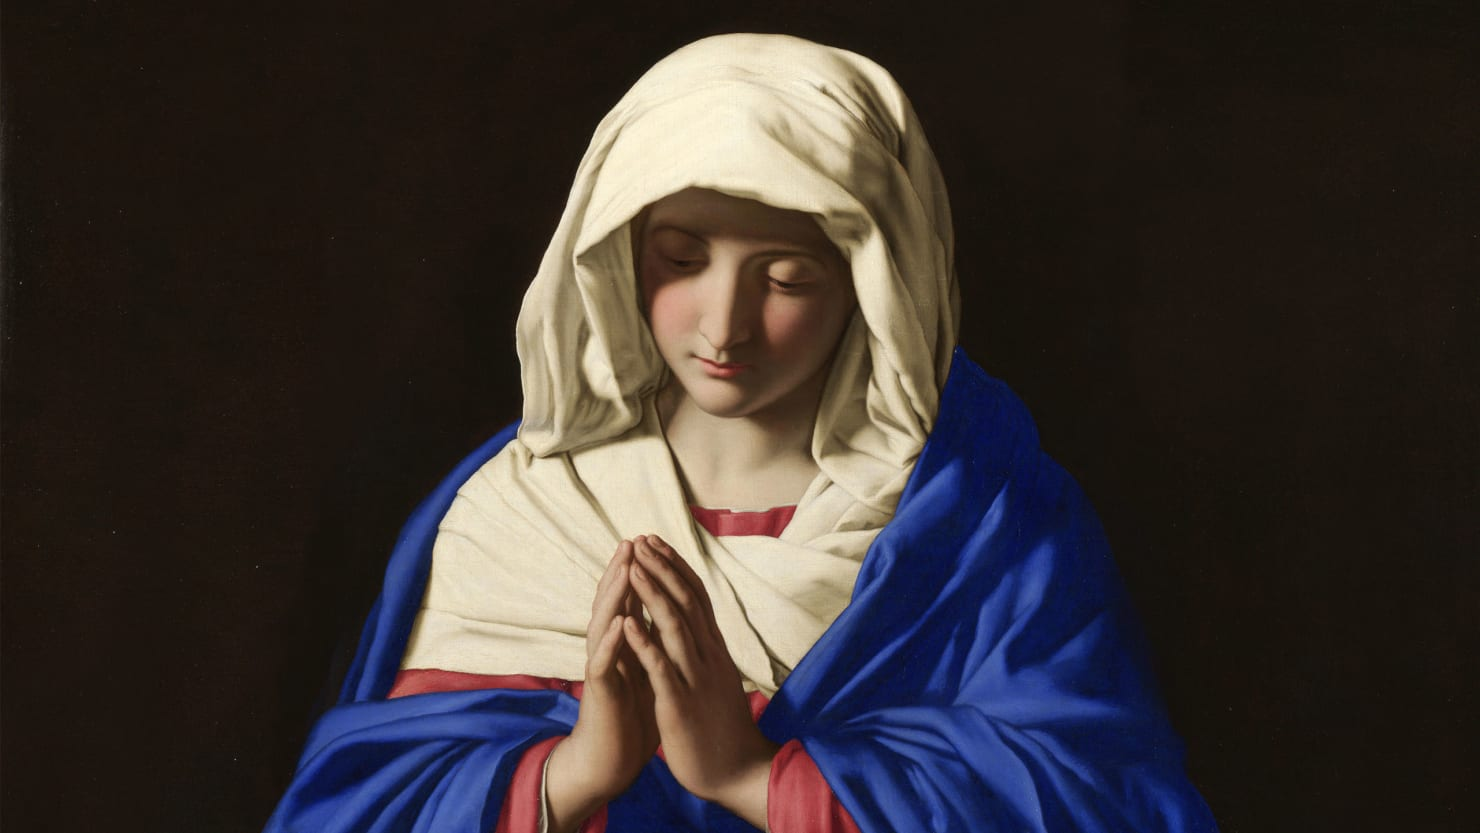 The Biggest Scandalous Myths About the Virgin Mary